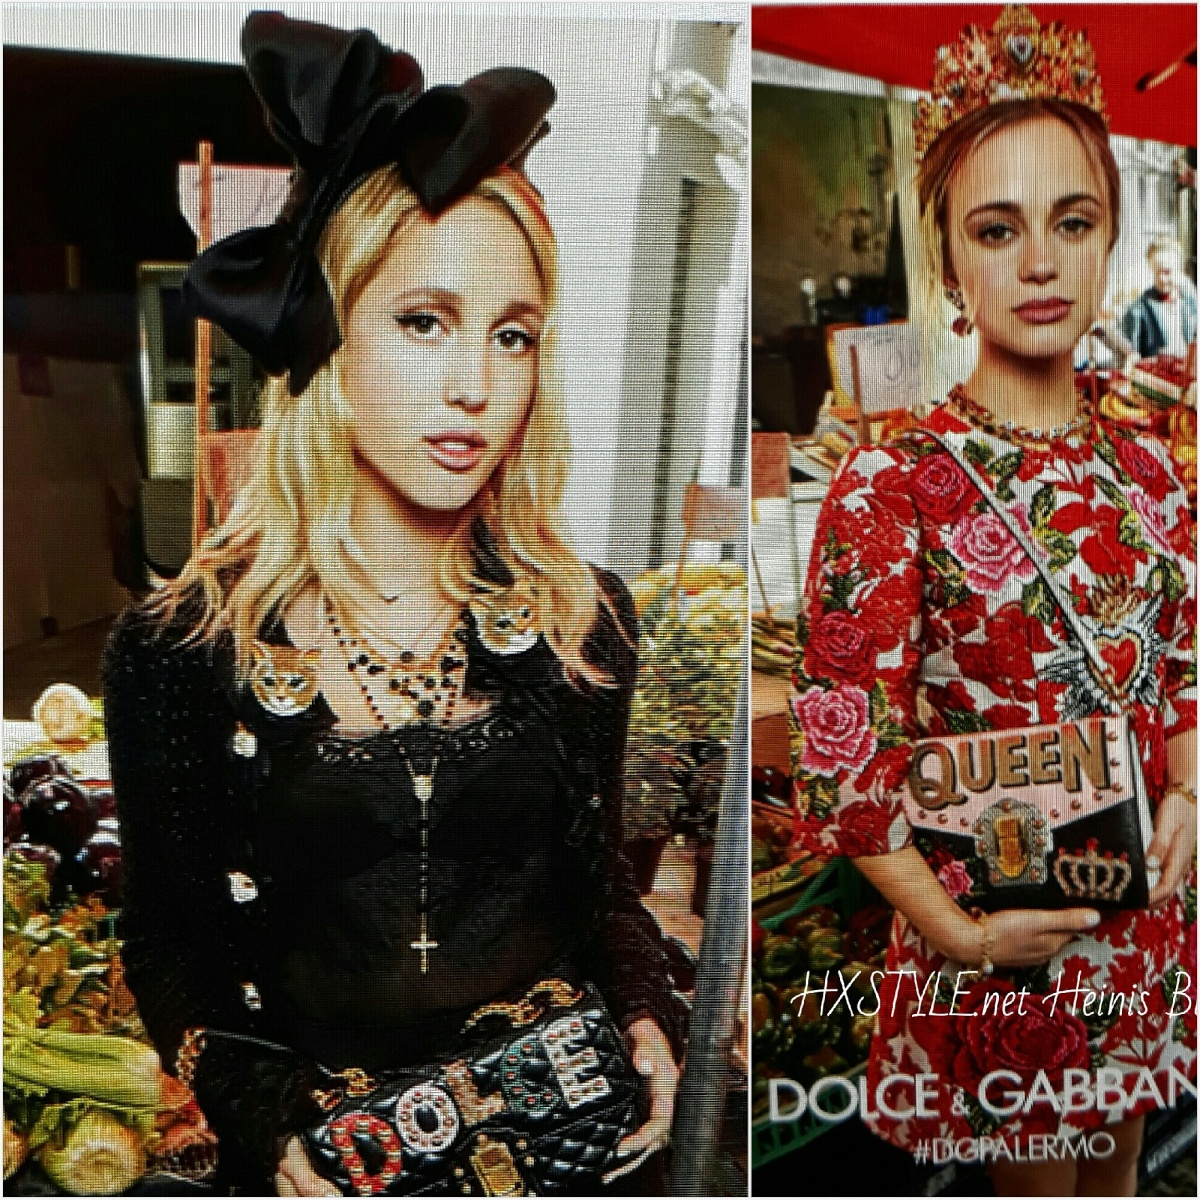 VOGUE NEWS&TRENDS. DOLCE&GABBANA, Milano. FALL COLLECTION 2016...HXSTYLE.net HEINIS Favourite